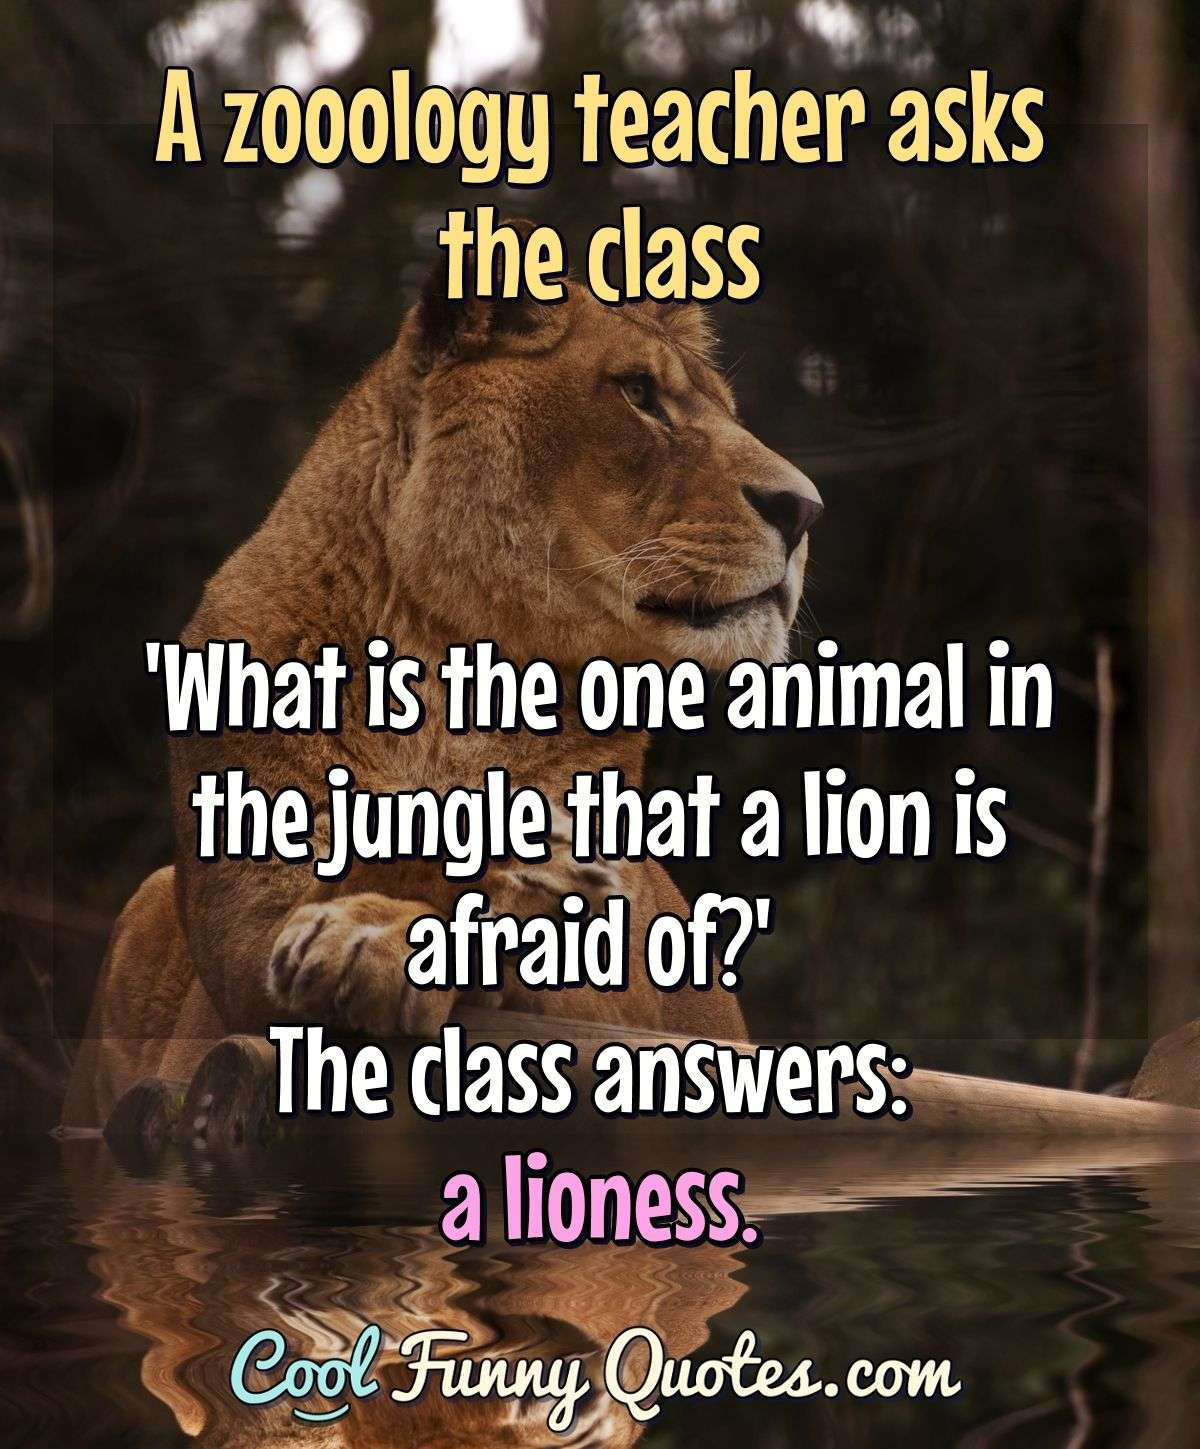 A zooology teacher asks the class 'What is the one animal in the jungle that a lion is afraid of?' The class answers: a lioness. - Anonymous